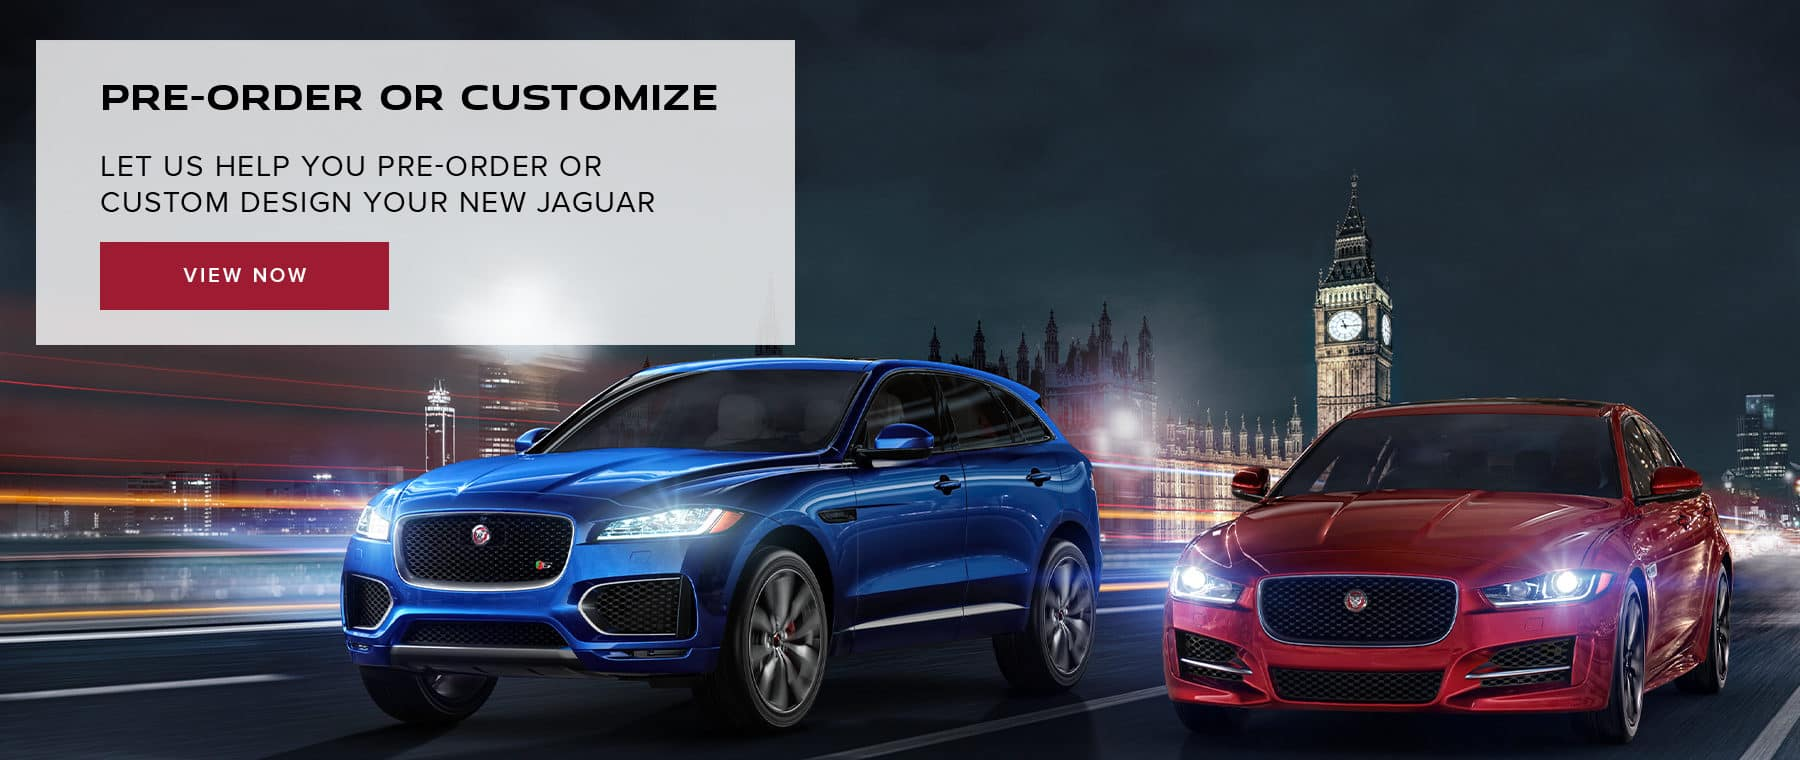 Pre-order or customize your Jaguar today!